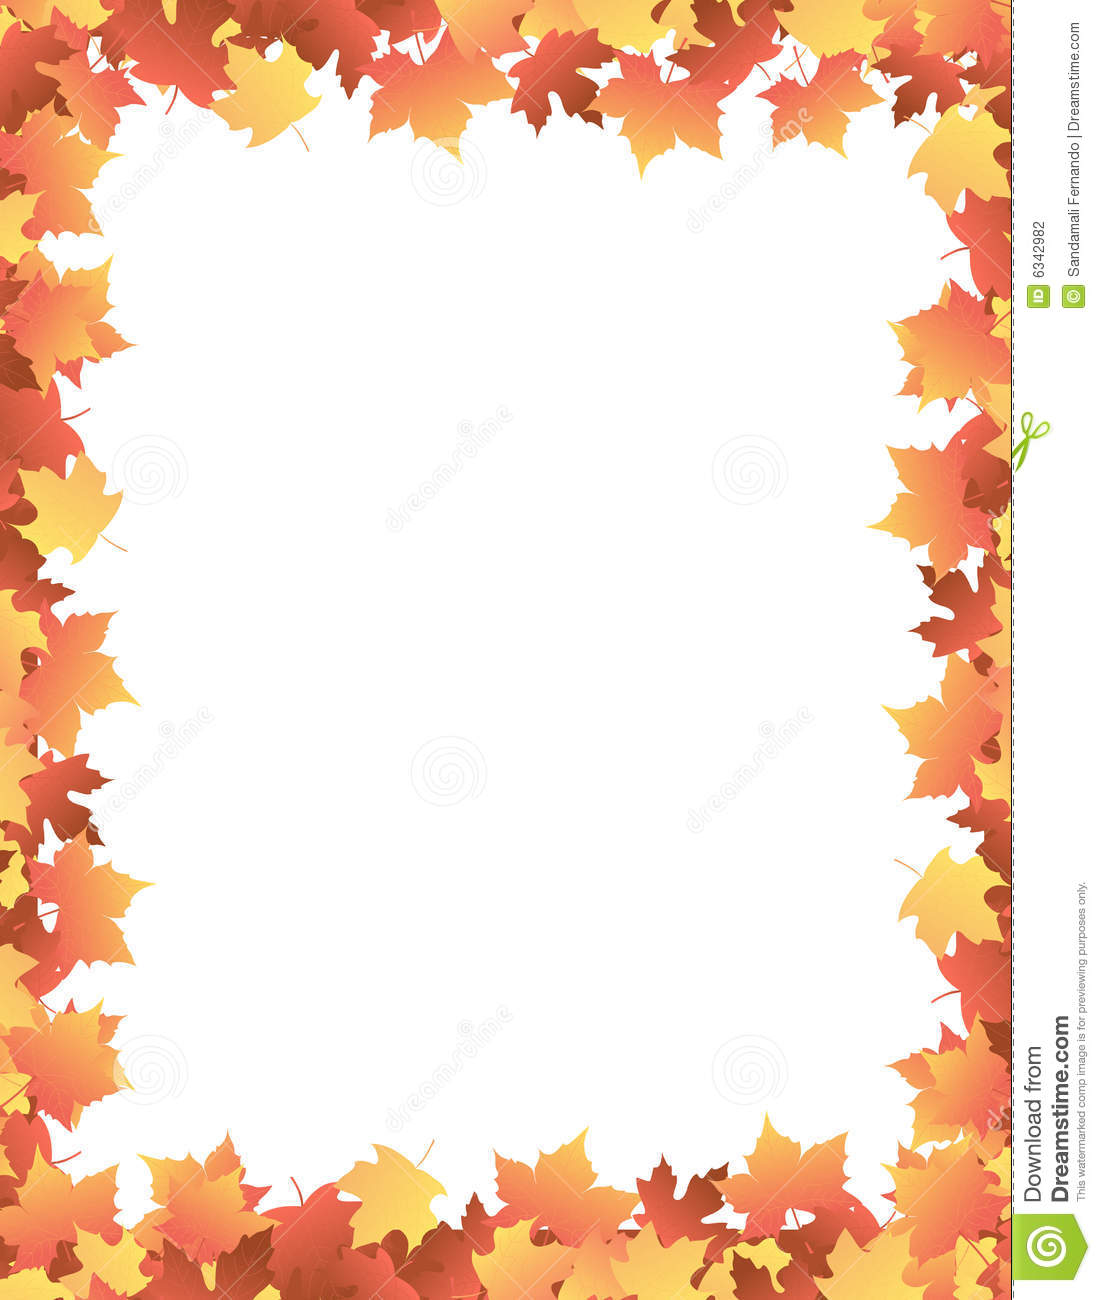 Fall Leaves Clip Art Border Recipe 101-Fall Leaves Clip Art Border Recipe 101-6